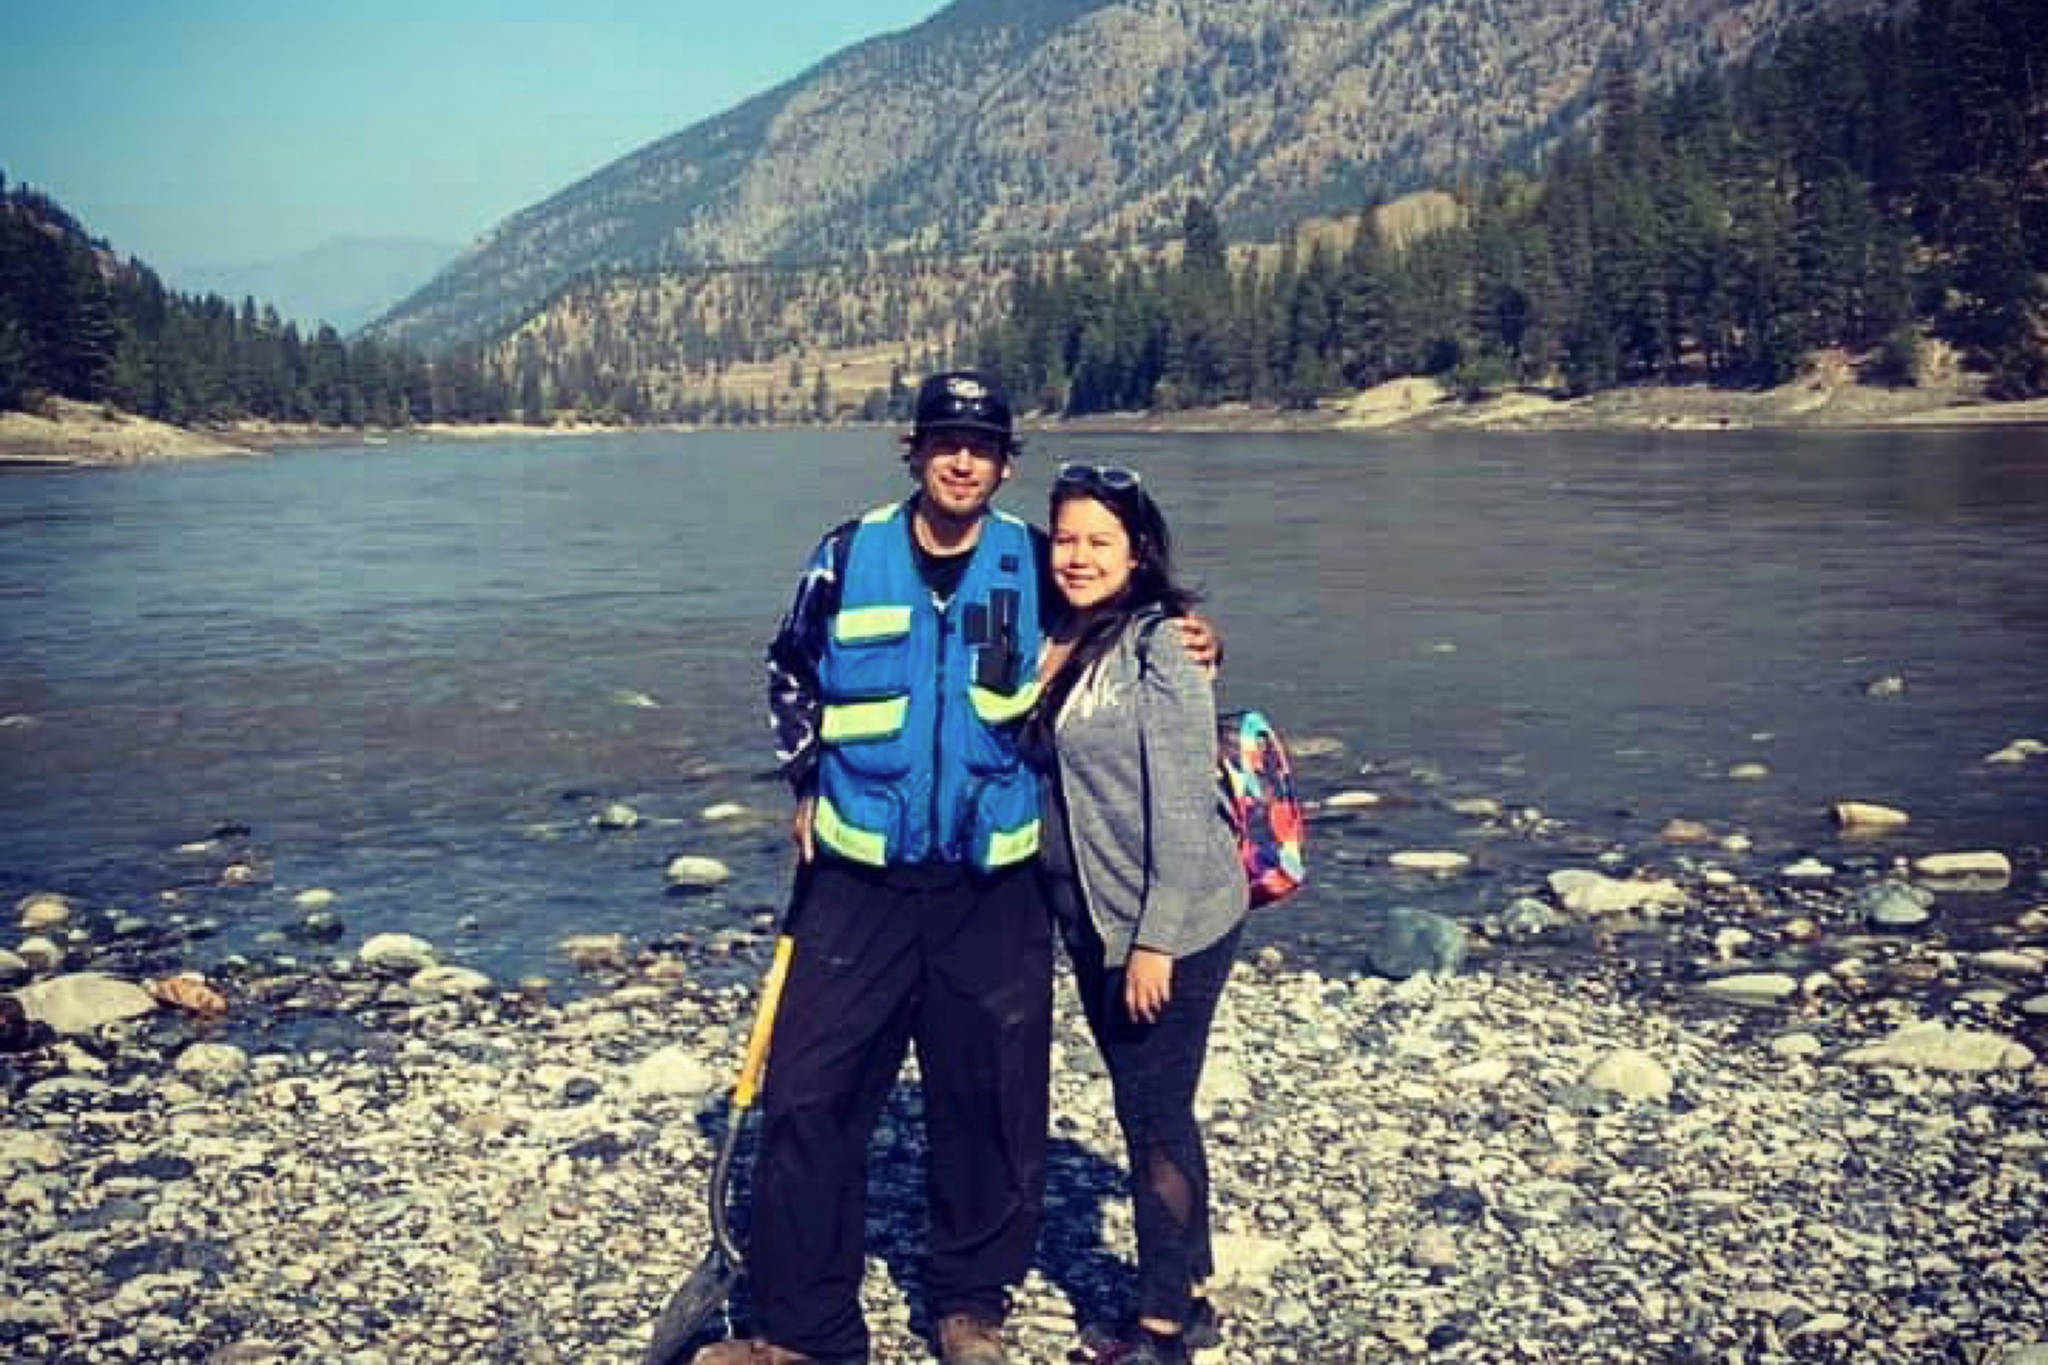 Rick Curiston and Tina Francis pose near the water. The couple followed through on a sobriety pact and have taken up prospecting near Lillooet. (Contributed Photo/Tina Francis)